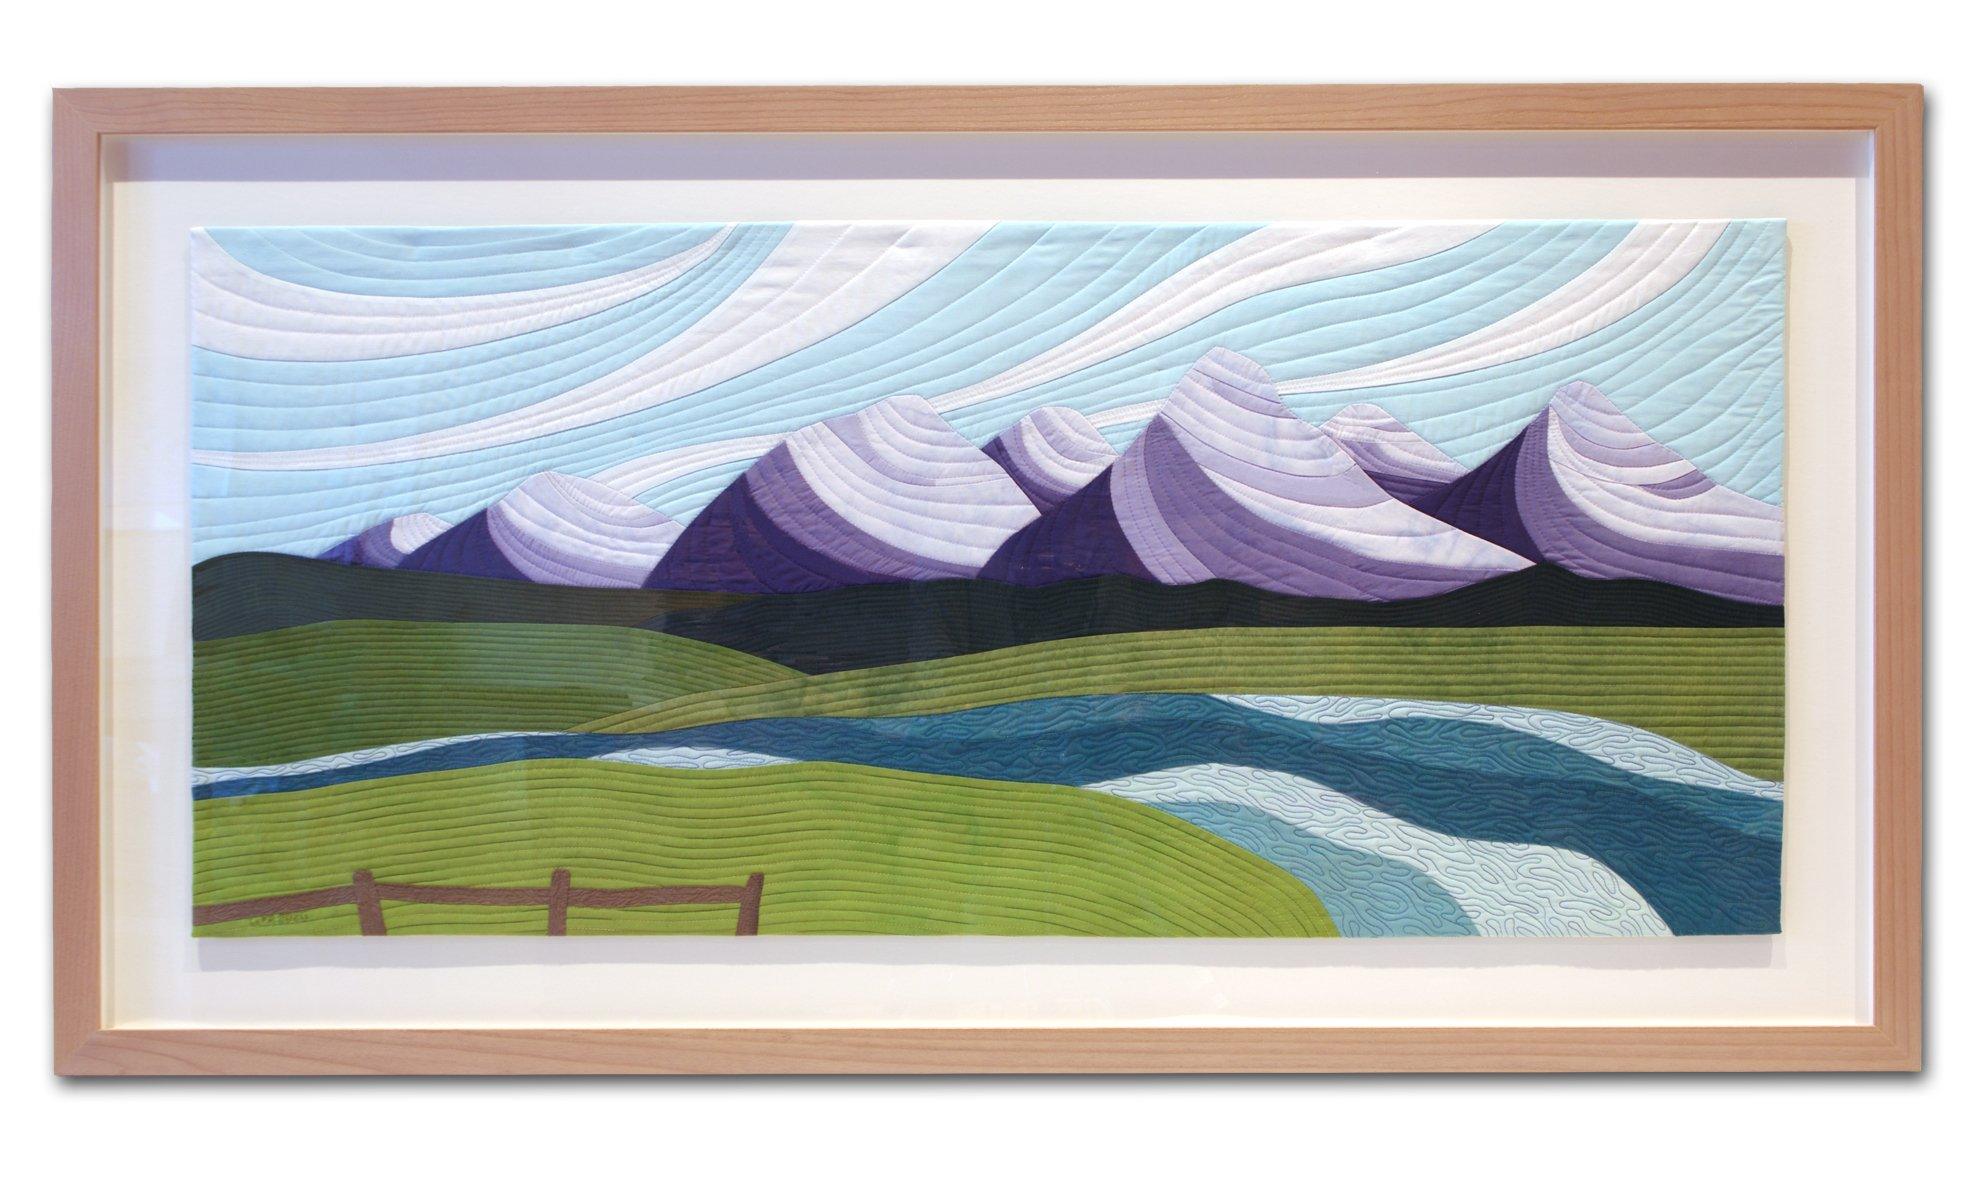 Framed view of commissioned artwork, Teton Tranquility, by Lisa Flowers Ross.